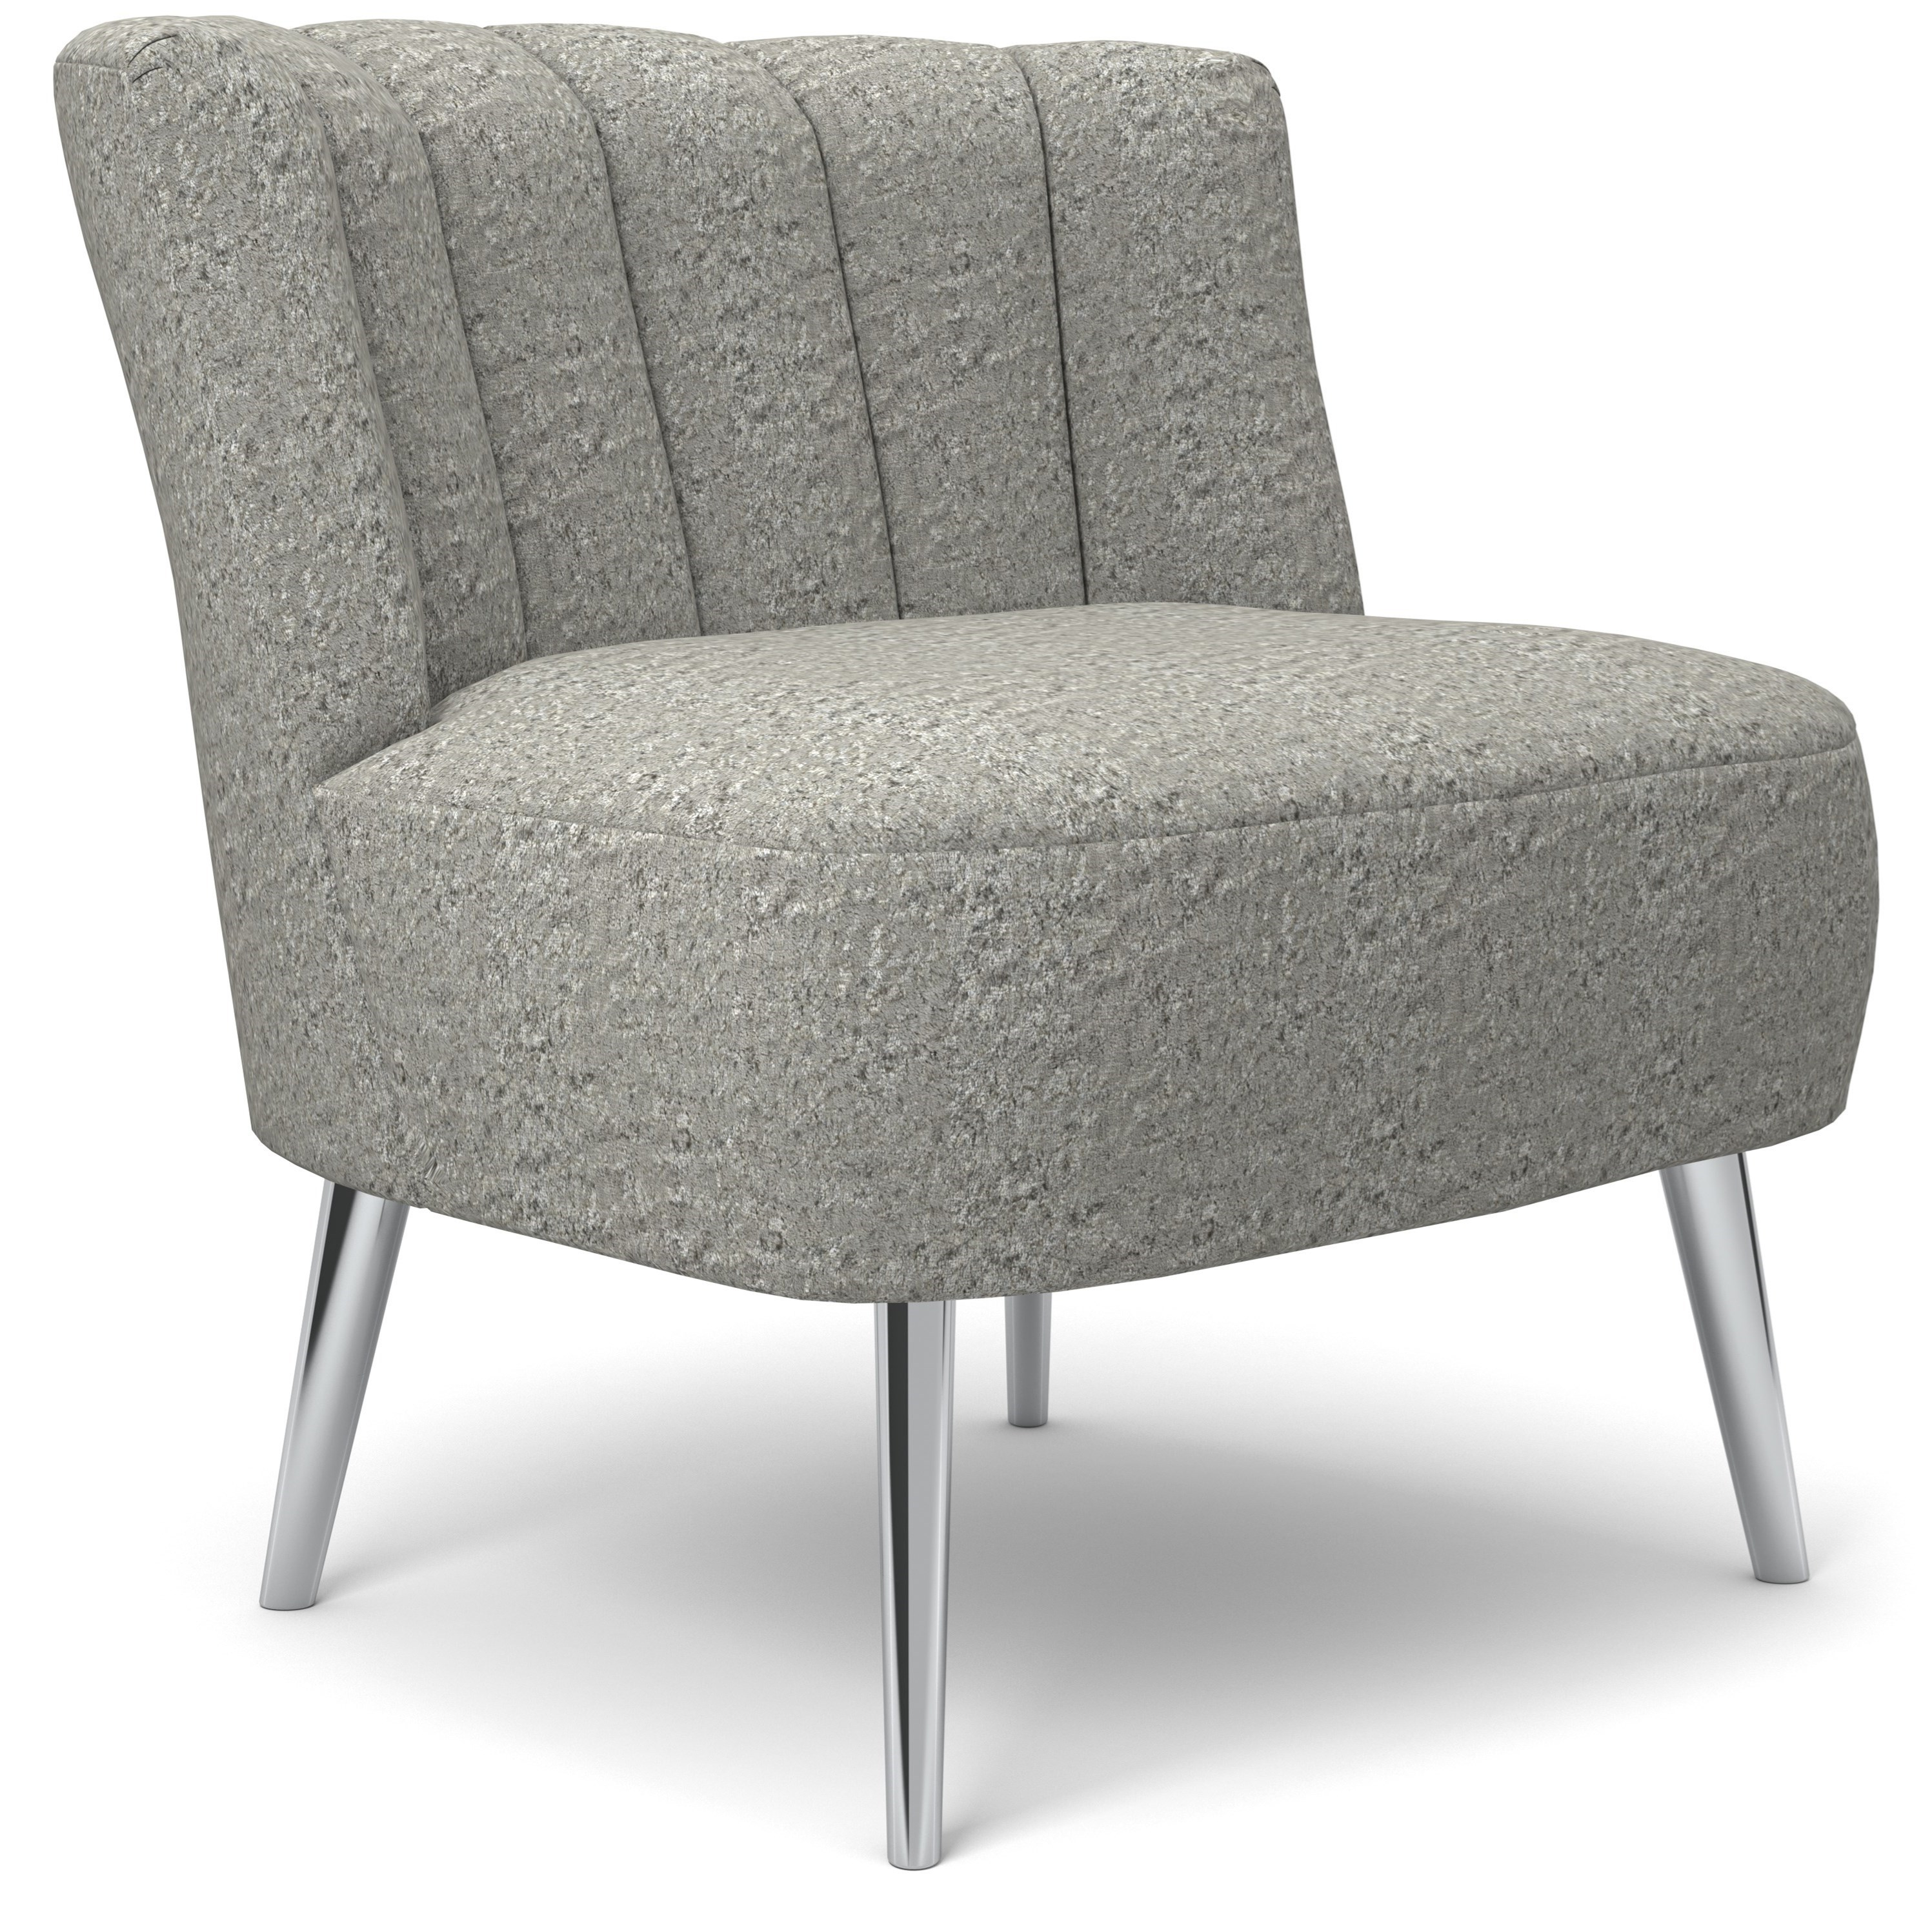 Best Xpress - Ameretta Accent Chair by Best Home Furnishings at Rife's Home Furniture